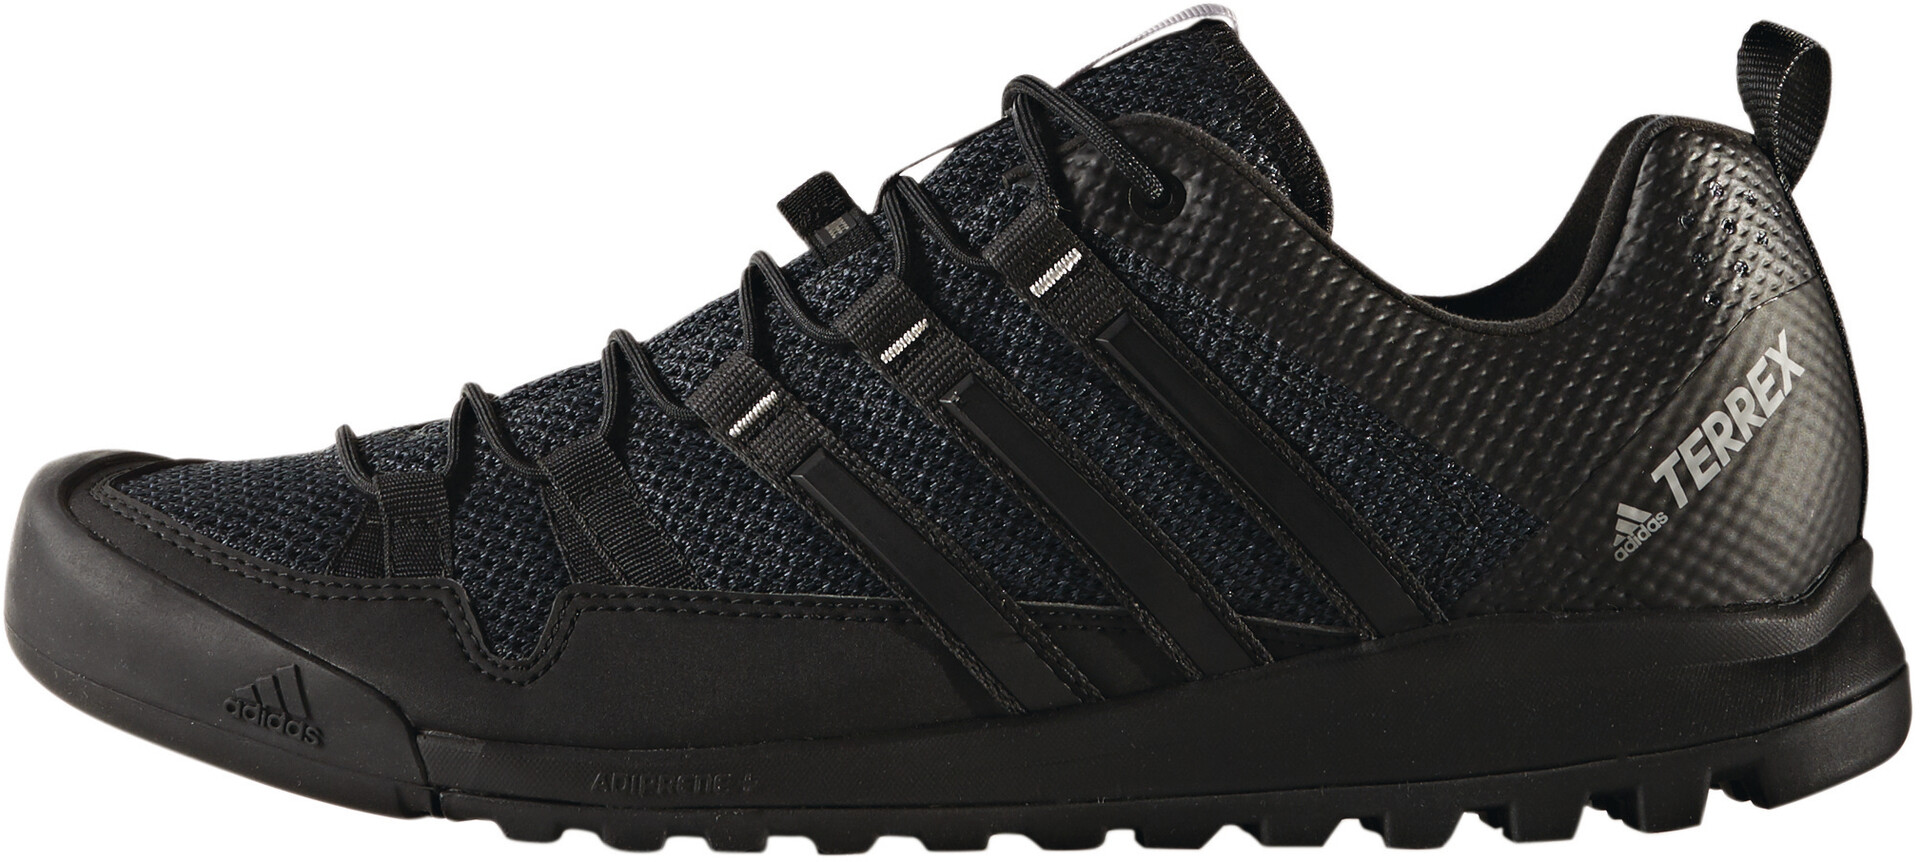 Sur Adidas Solo Homme Grisnoir Chaussures Campz Terrex 76yvYgbfI